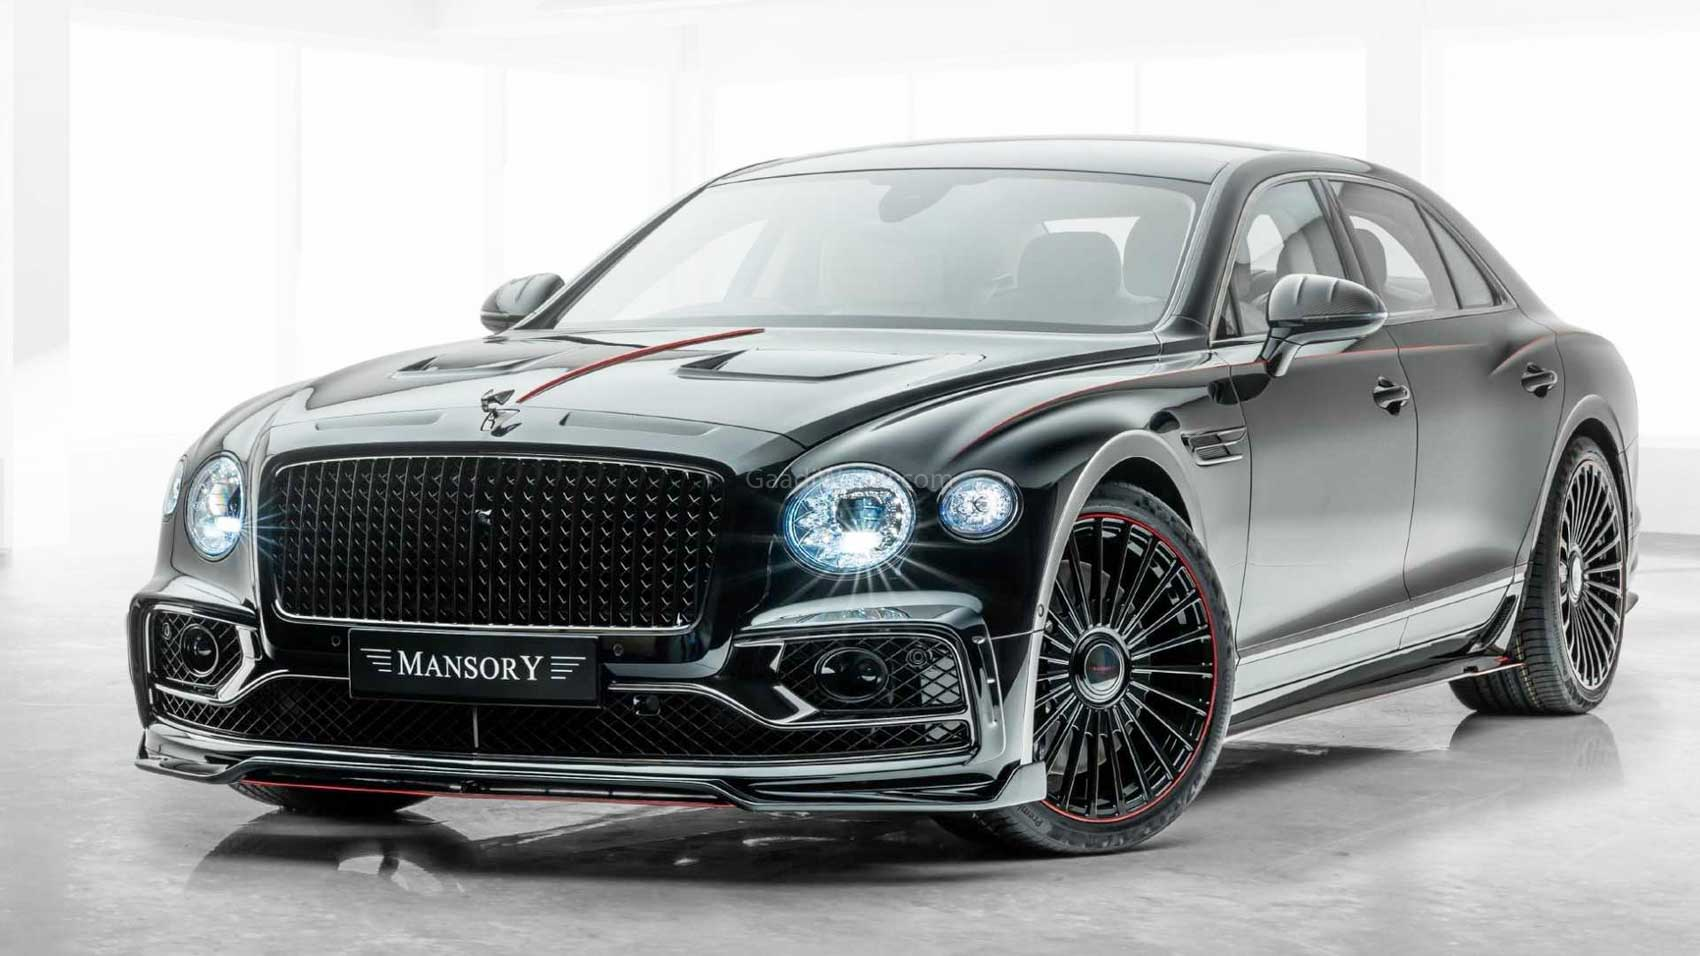 2020 Mansory Bentley Flying Spur's 6.0L Engine Makes 710 PS/1000 Nm